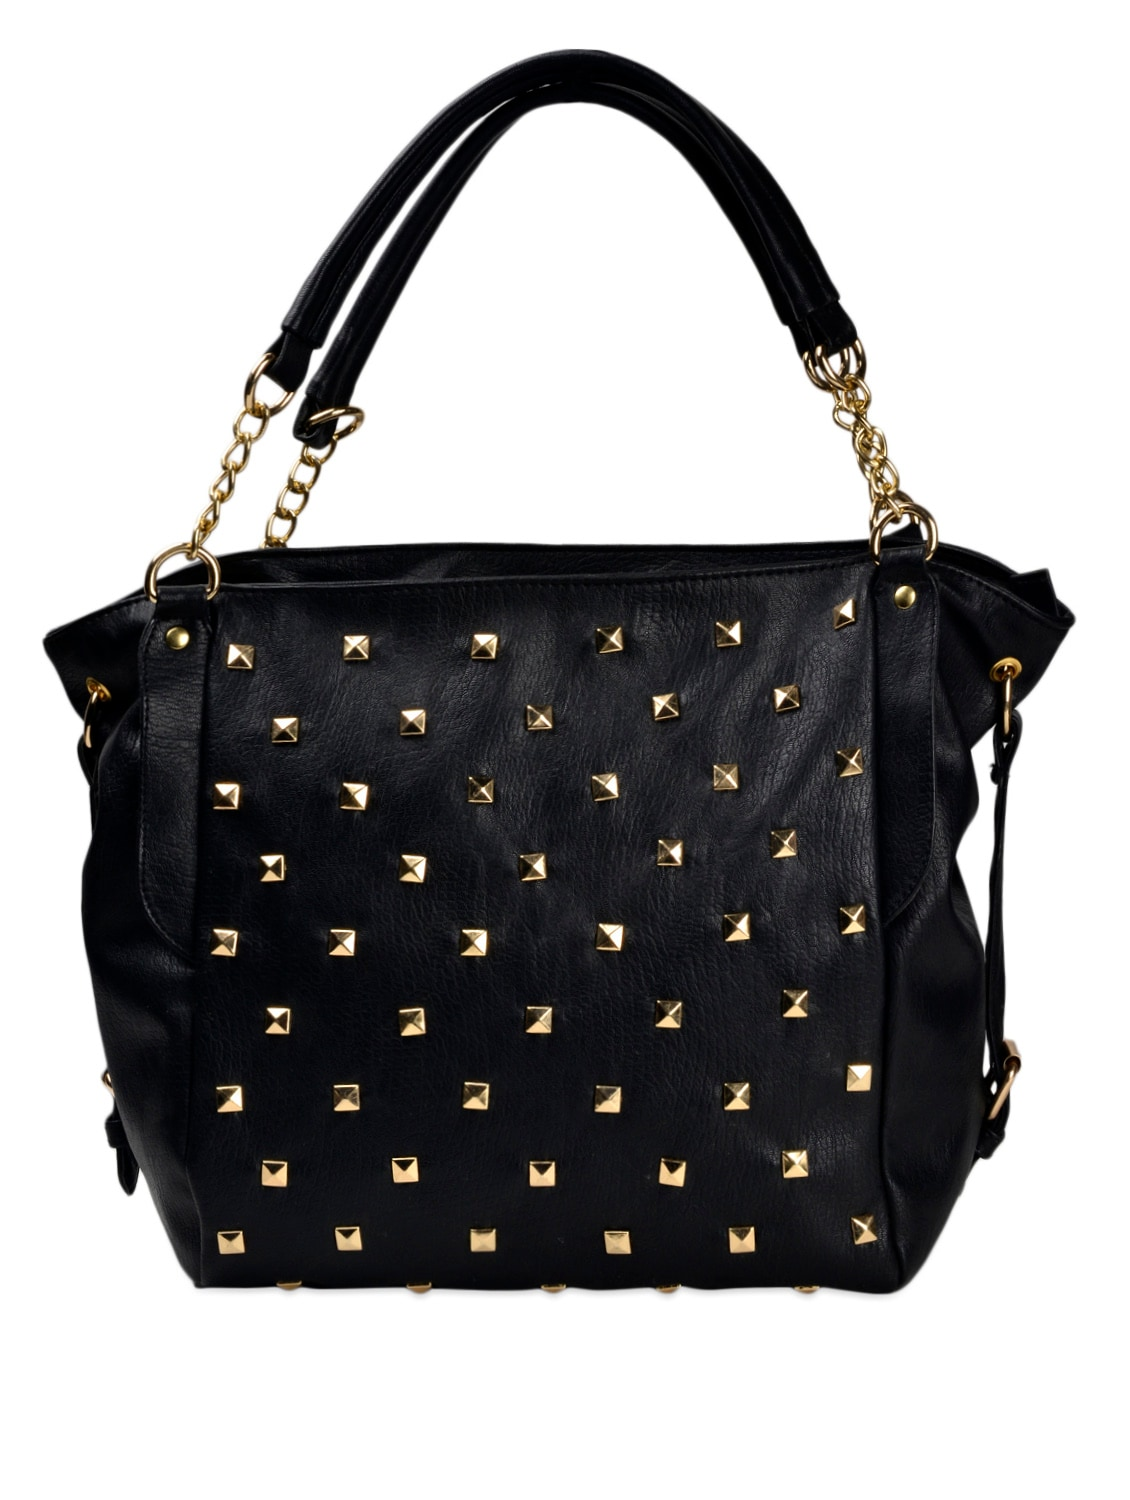 Buy Black Leatherette Handbag by Lychee Bags - Online shopping for Handbags  in India  34f6a41980fe4